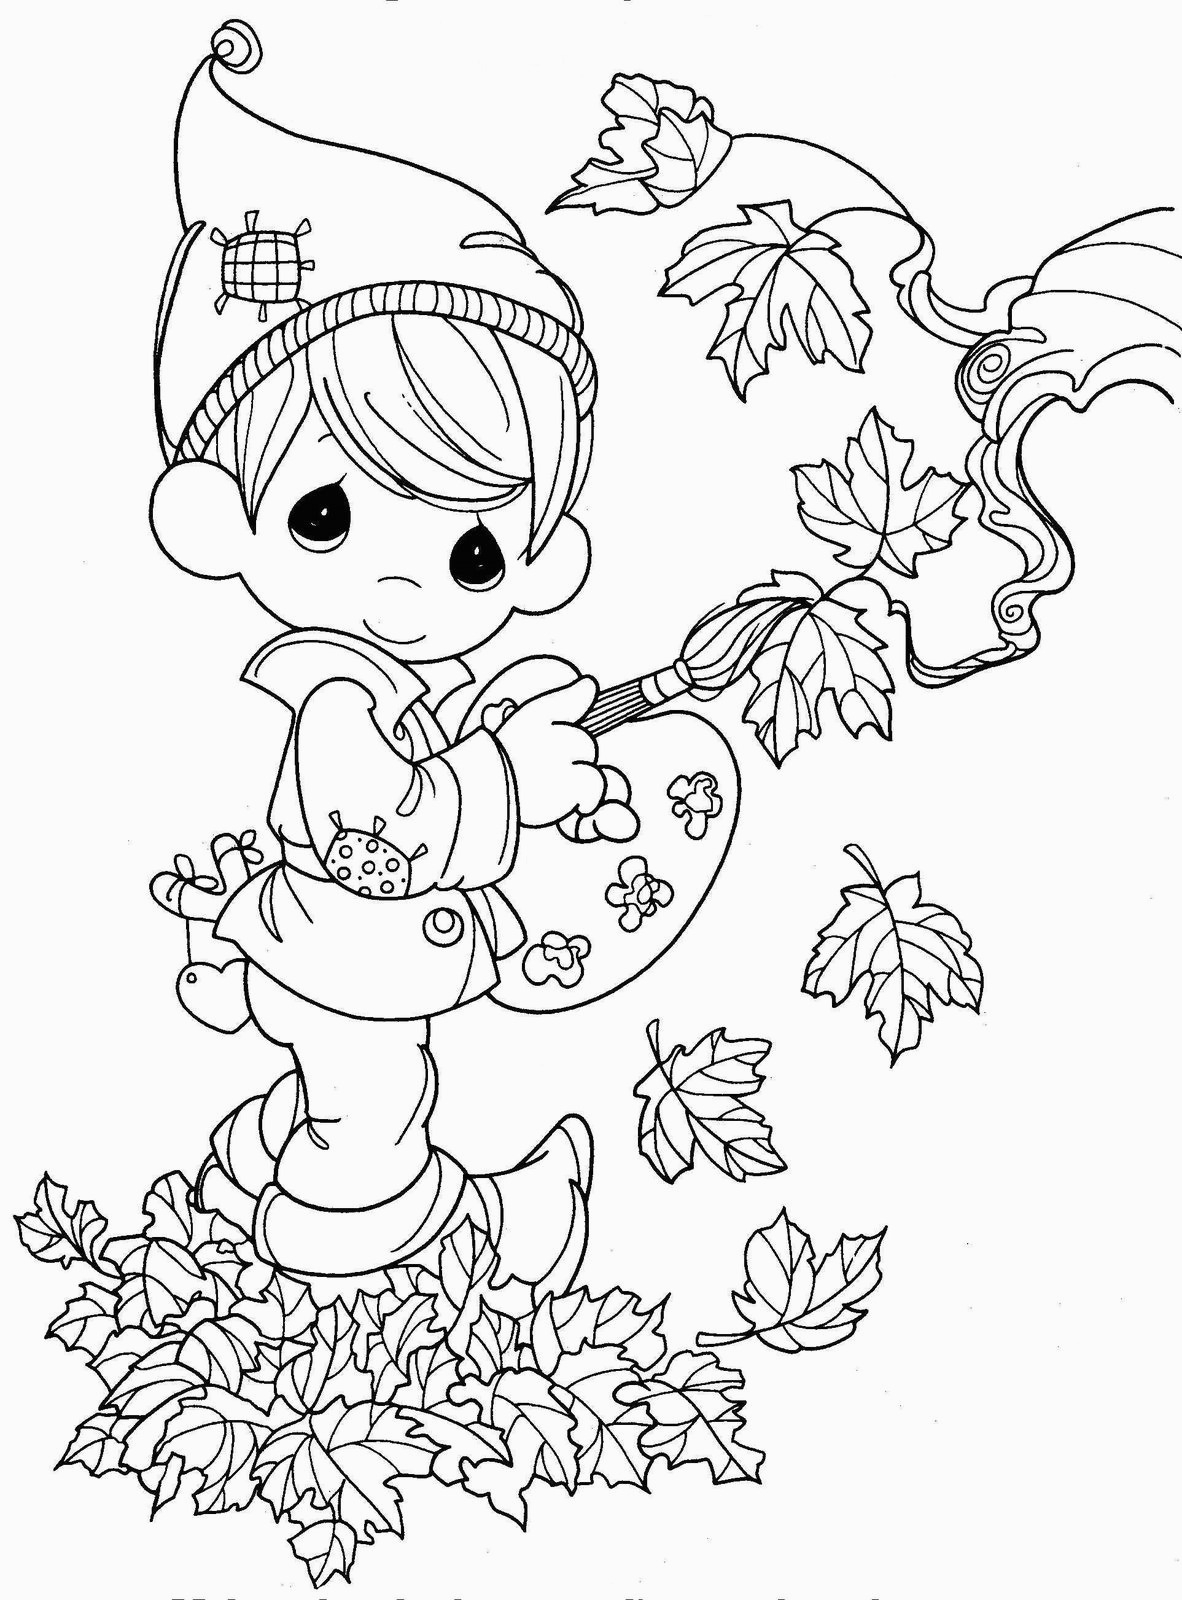 Fall Color Page Letter F Is For Fall Coloring Page For Fall Color Pages Get